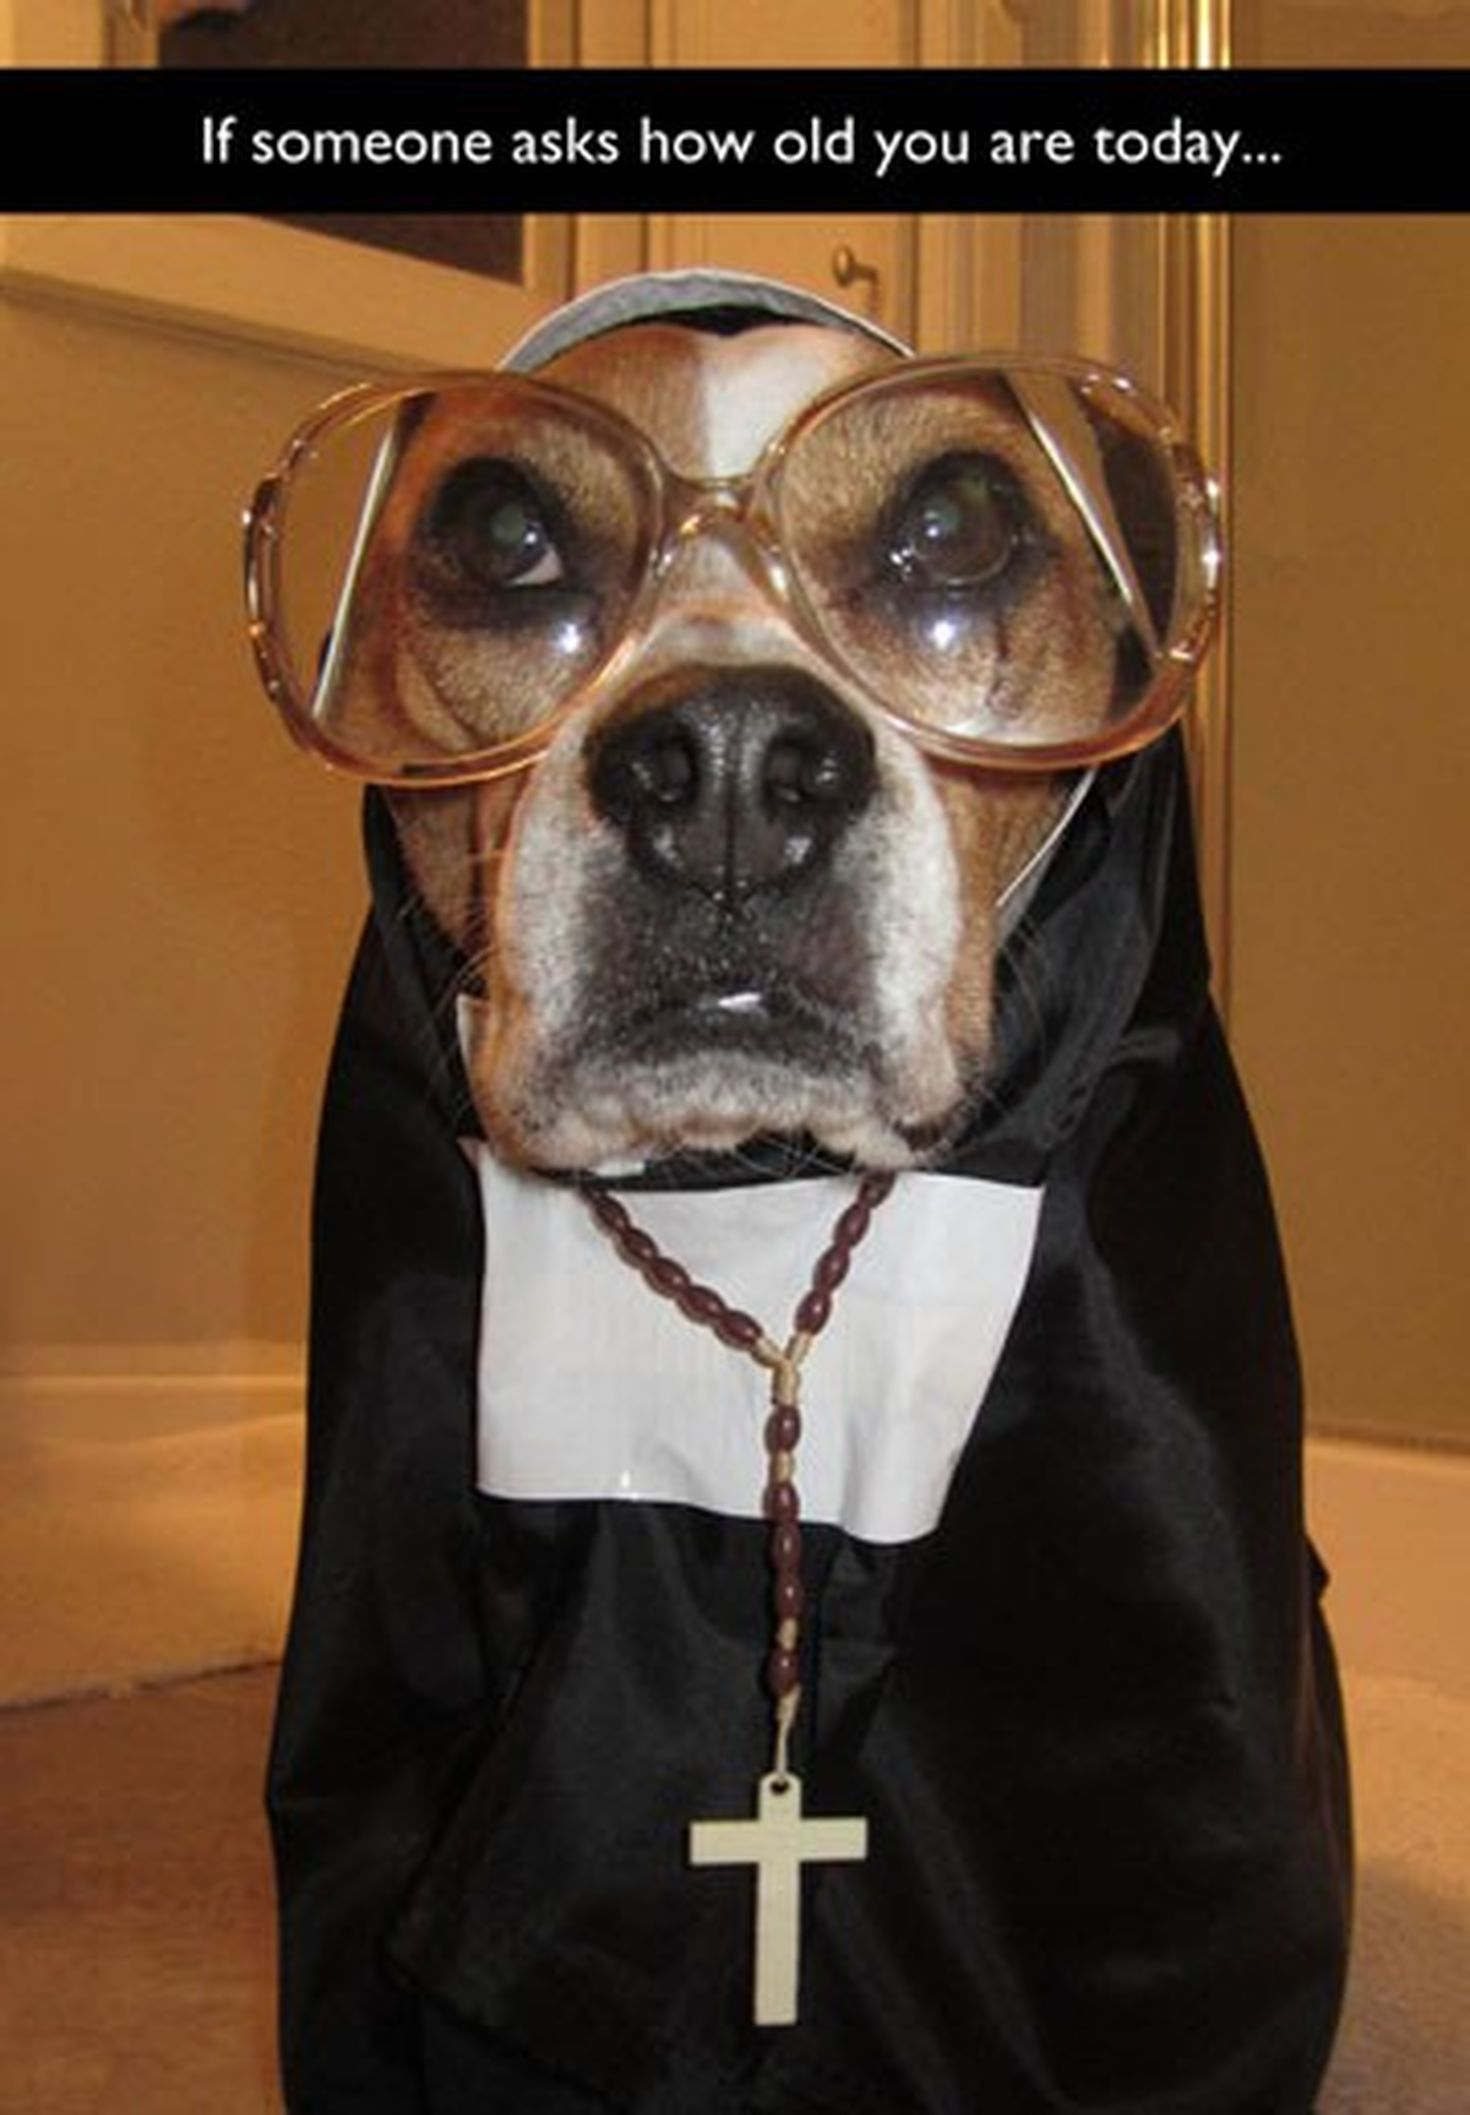 Dog In A Nun Costume With Images Dressed Up Dogs Funny Friend